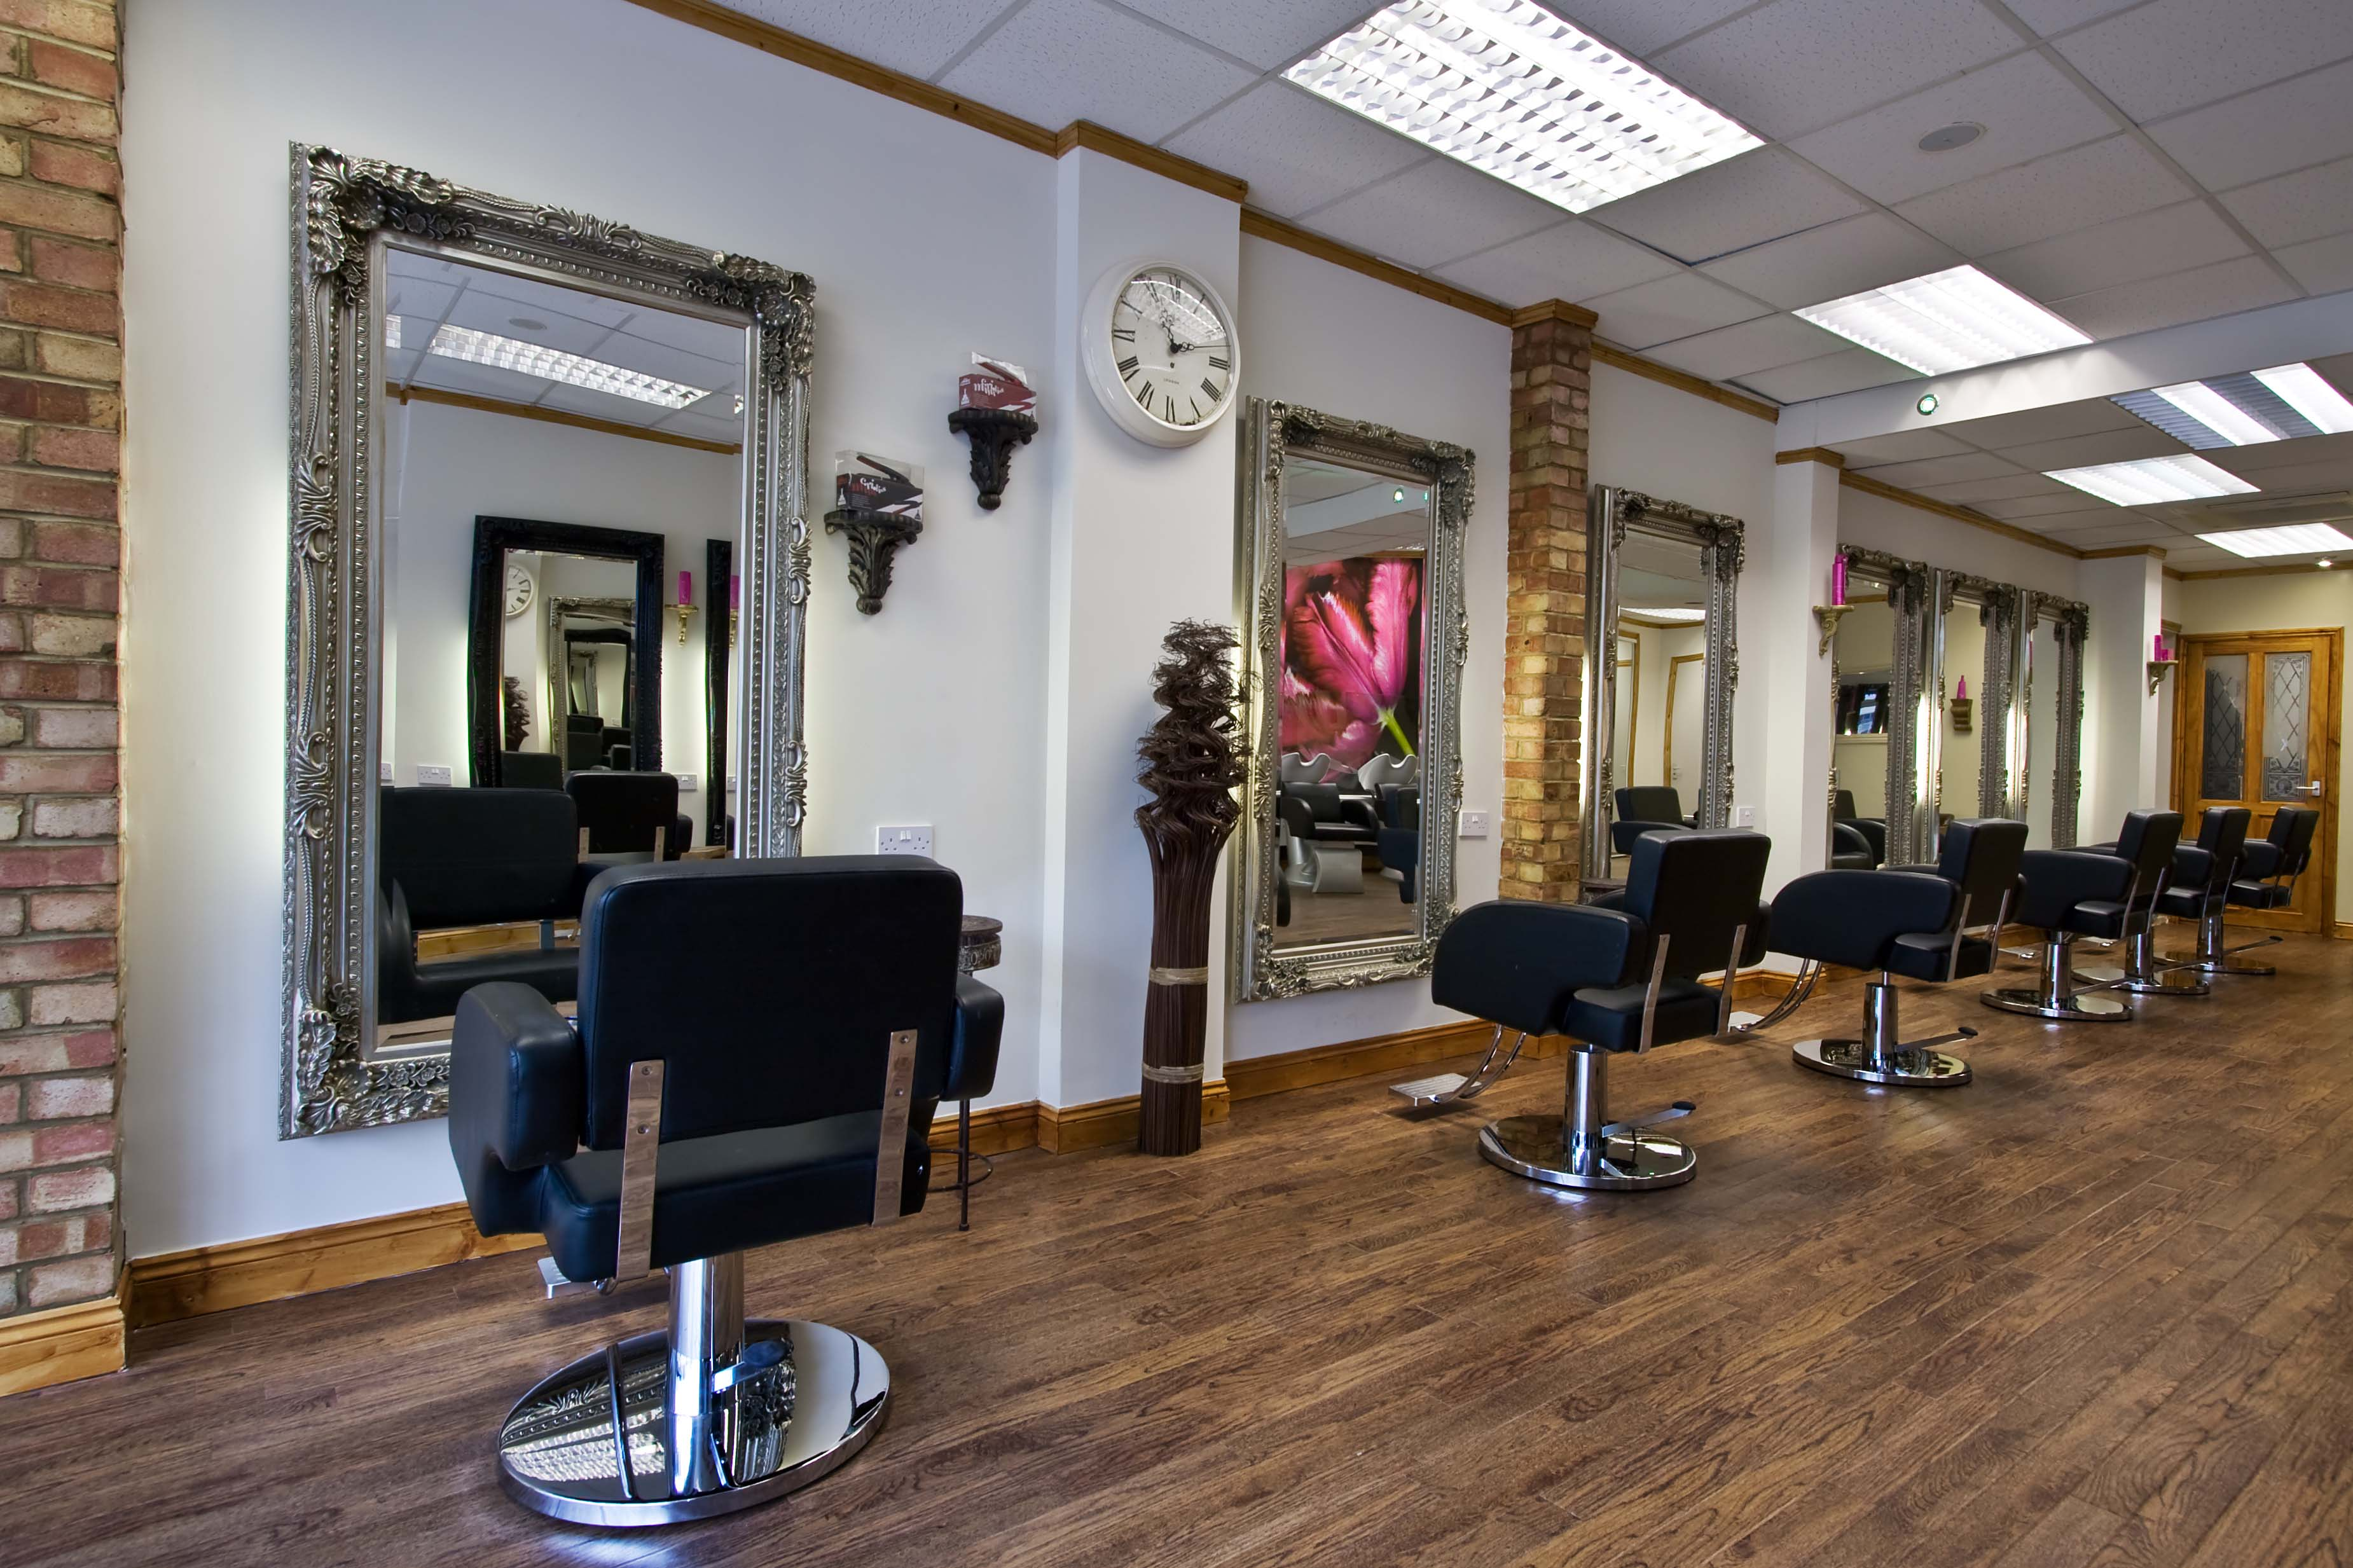 Hairdresser salon joy studio design gallery best design for About beauty salon